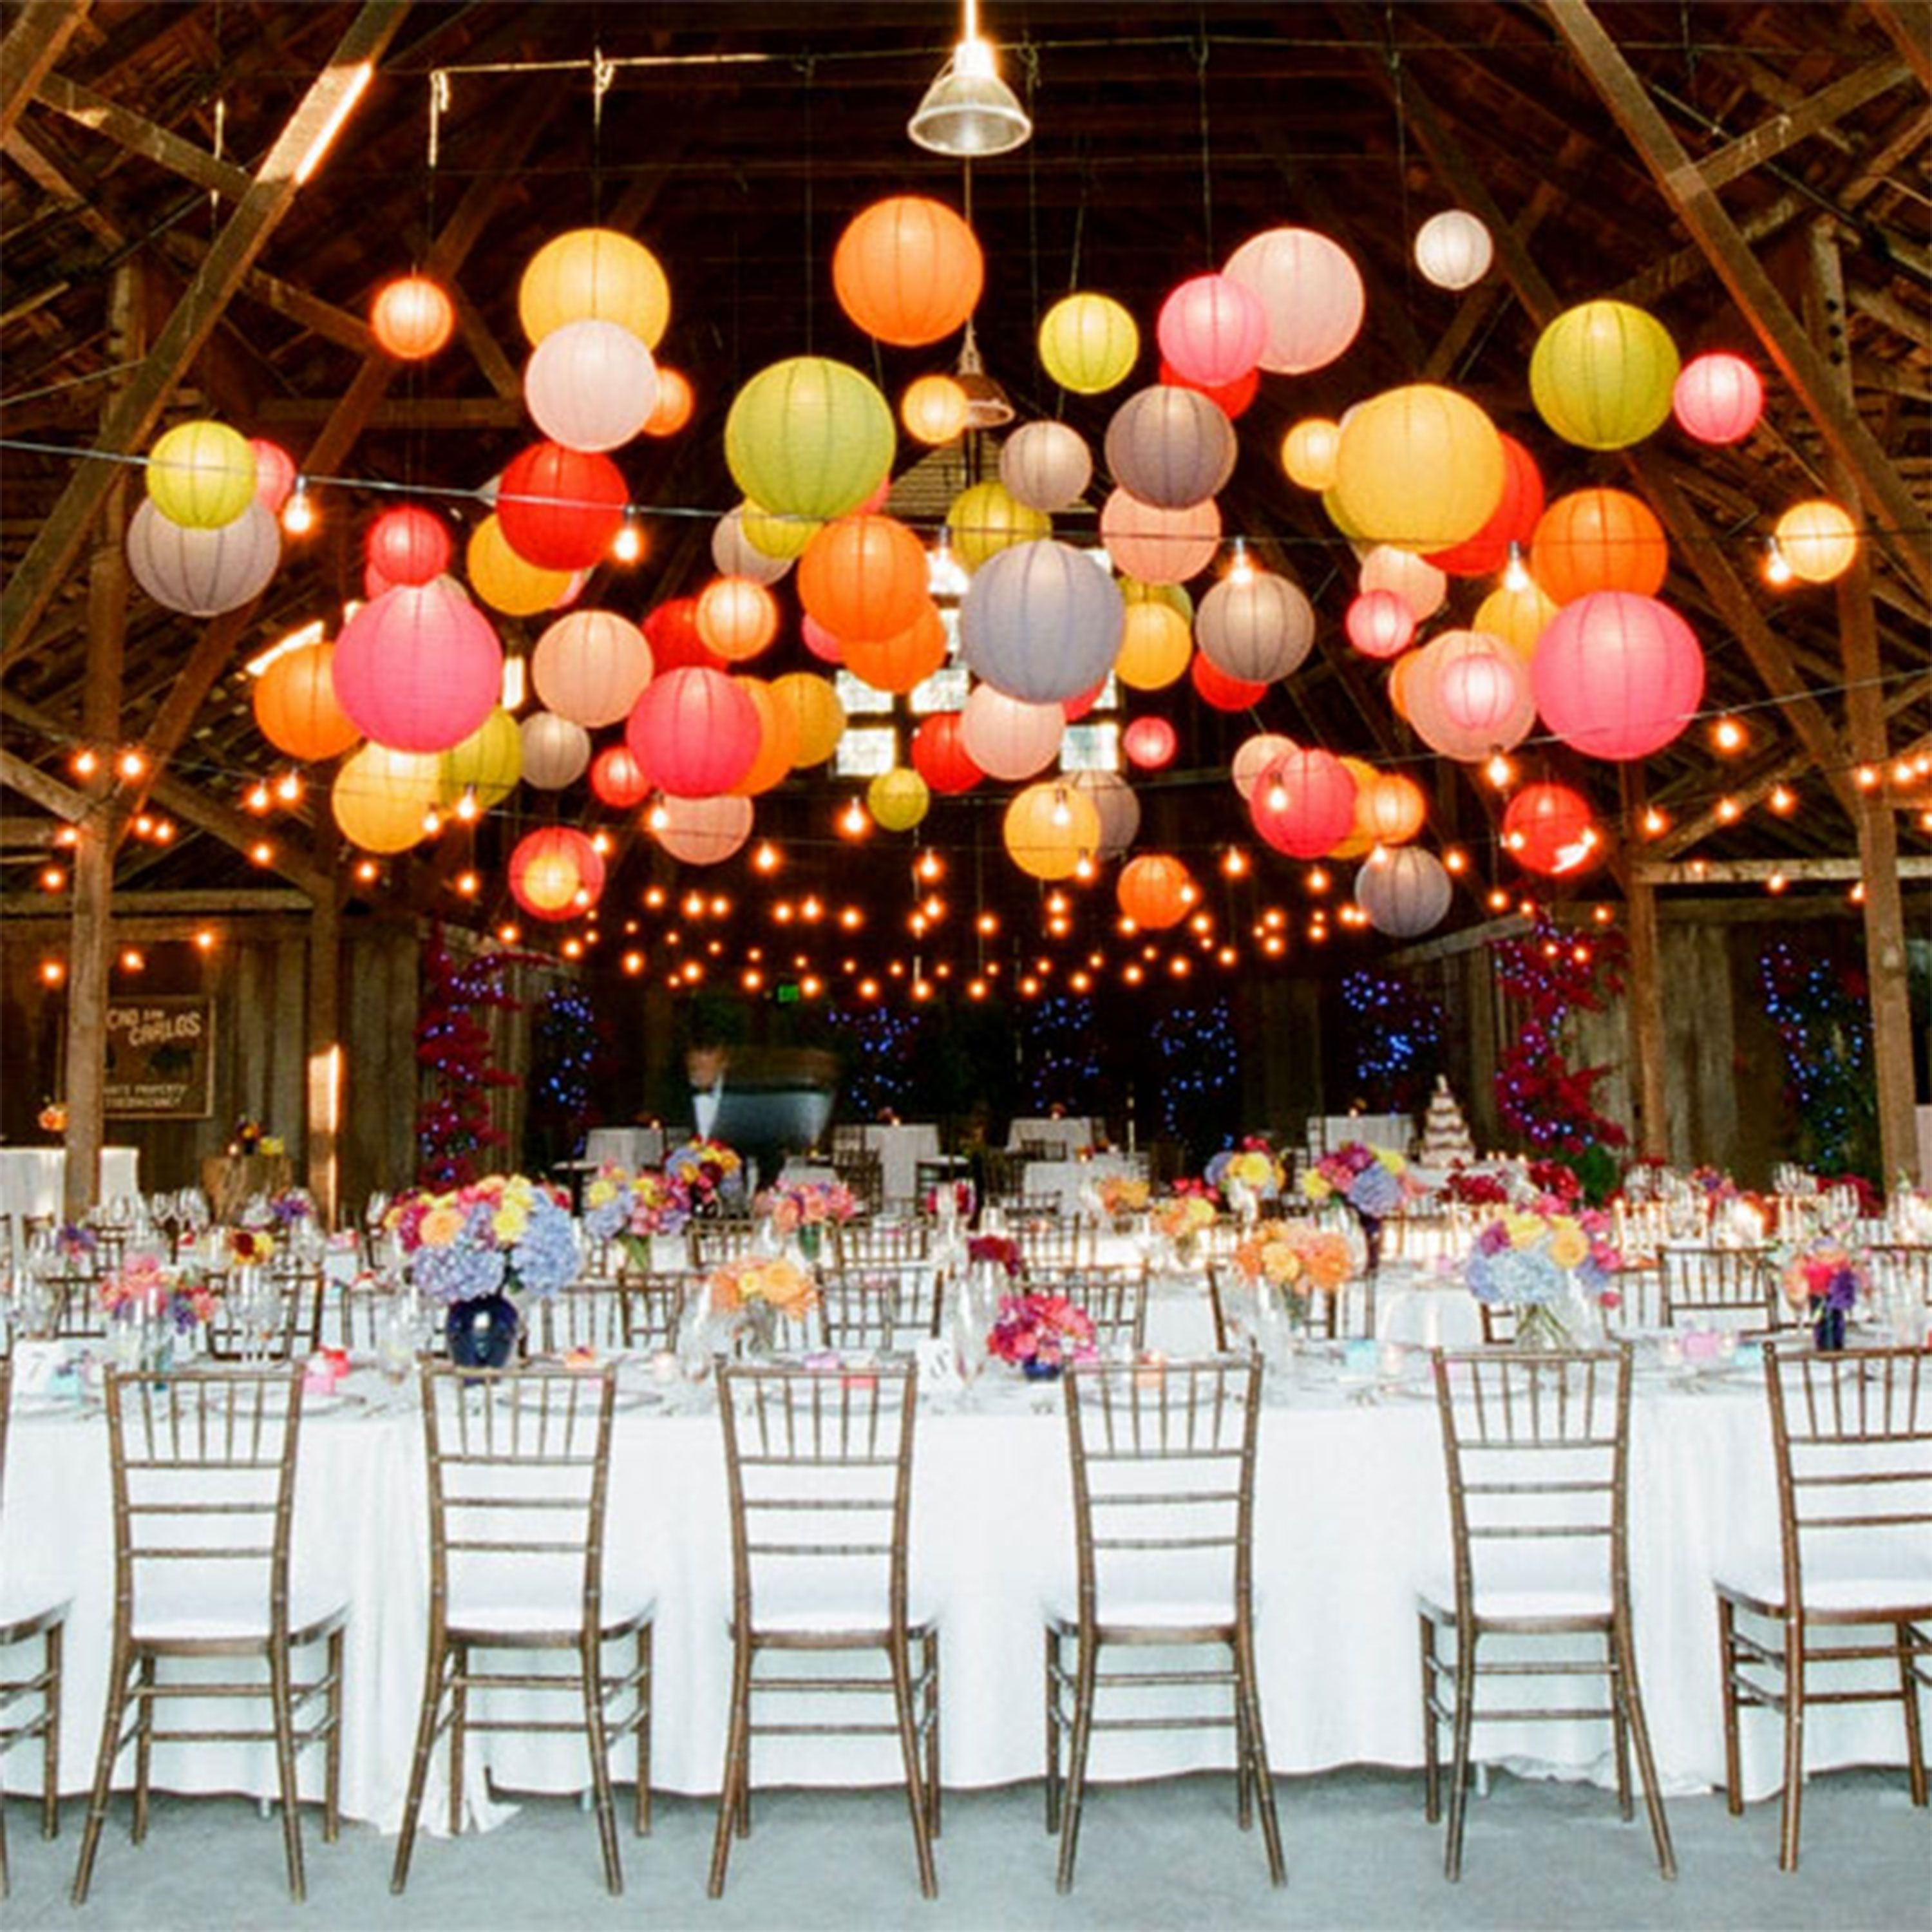 Wedding Paper Lantern Cluster | Wedding Paper Lanterns, Outdoor For Outdoor Hanging Paper Lanterns (View 13 of 15)